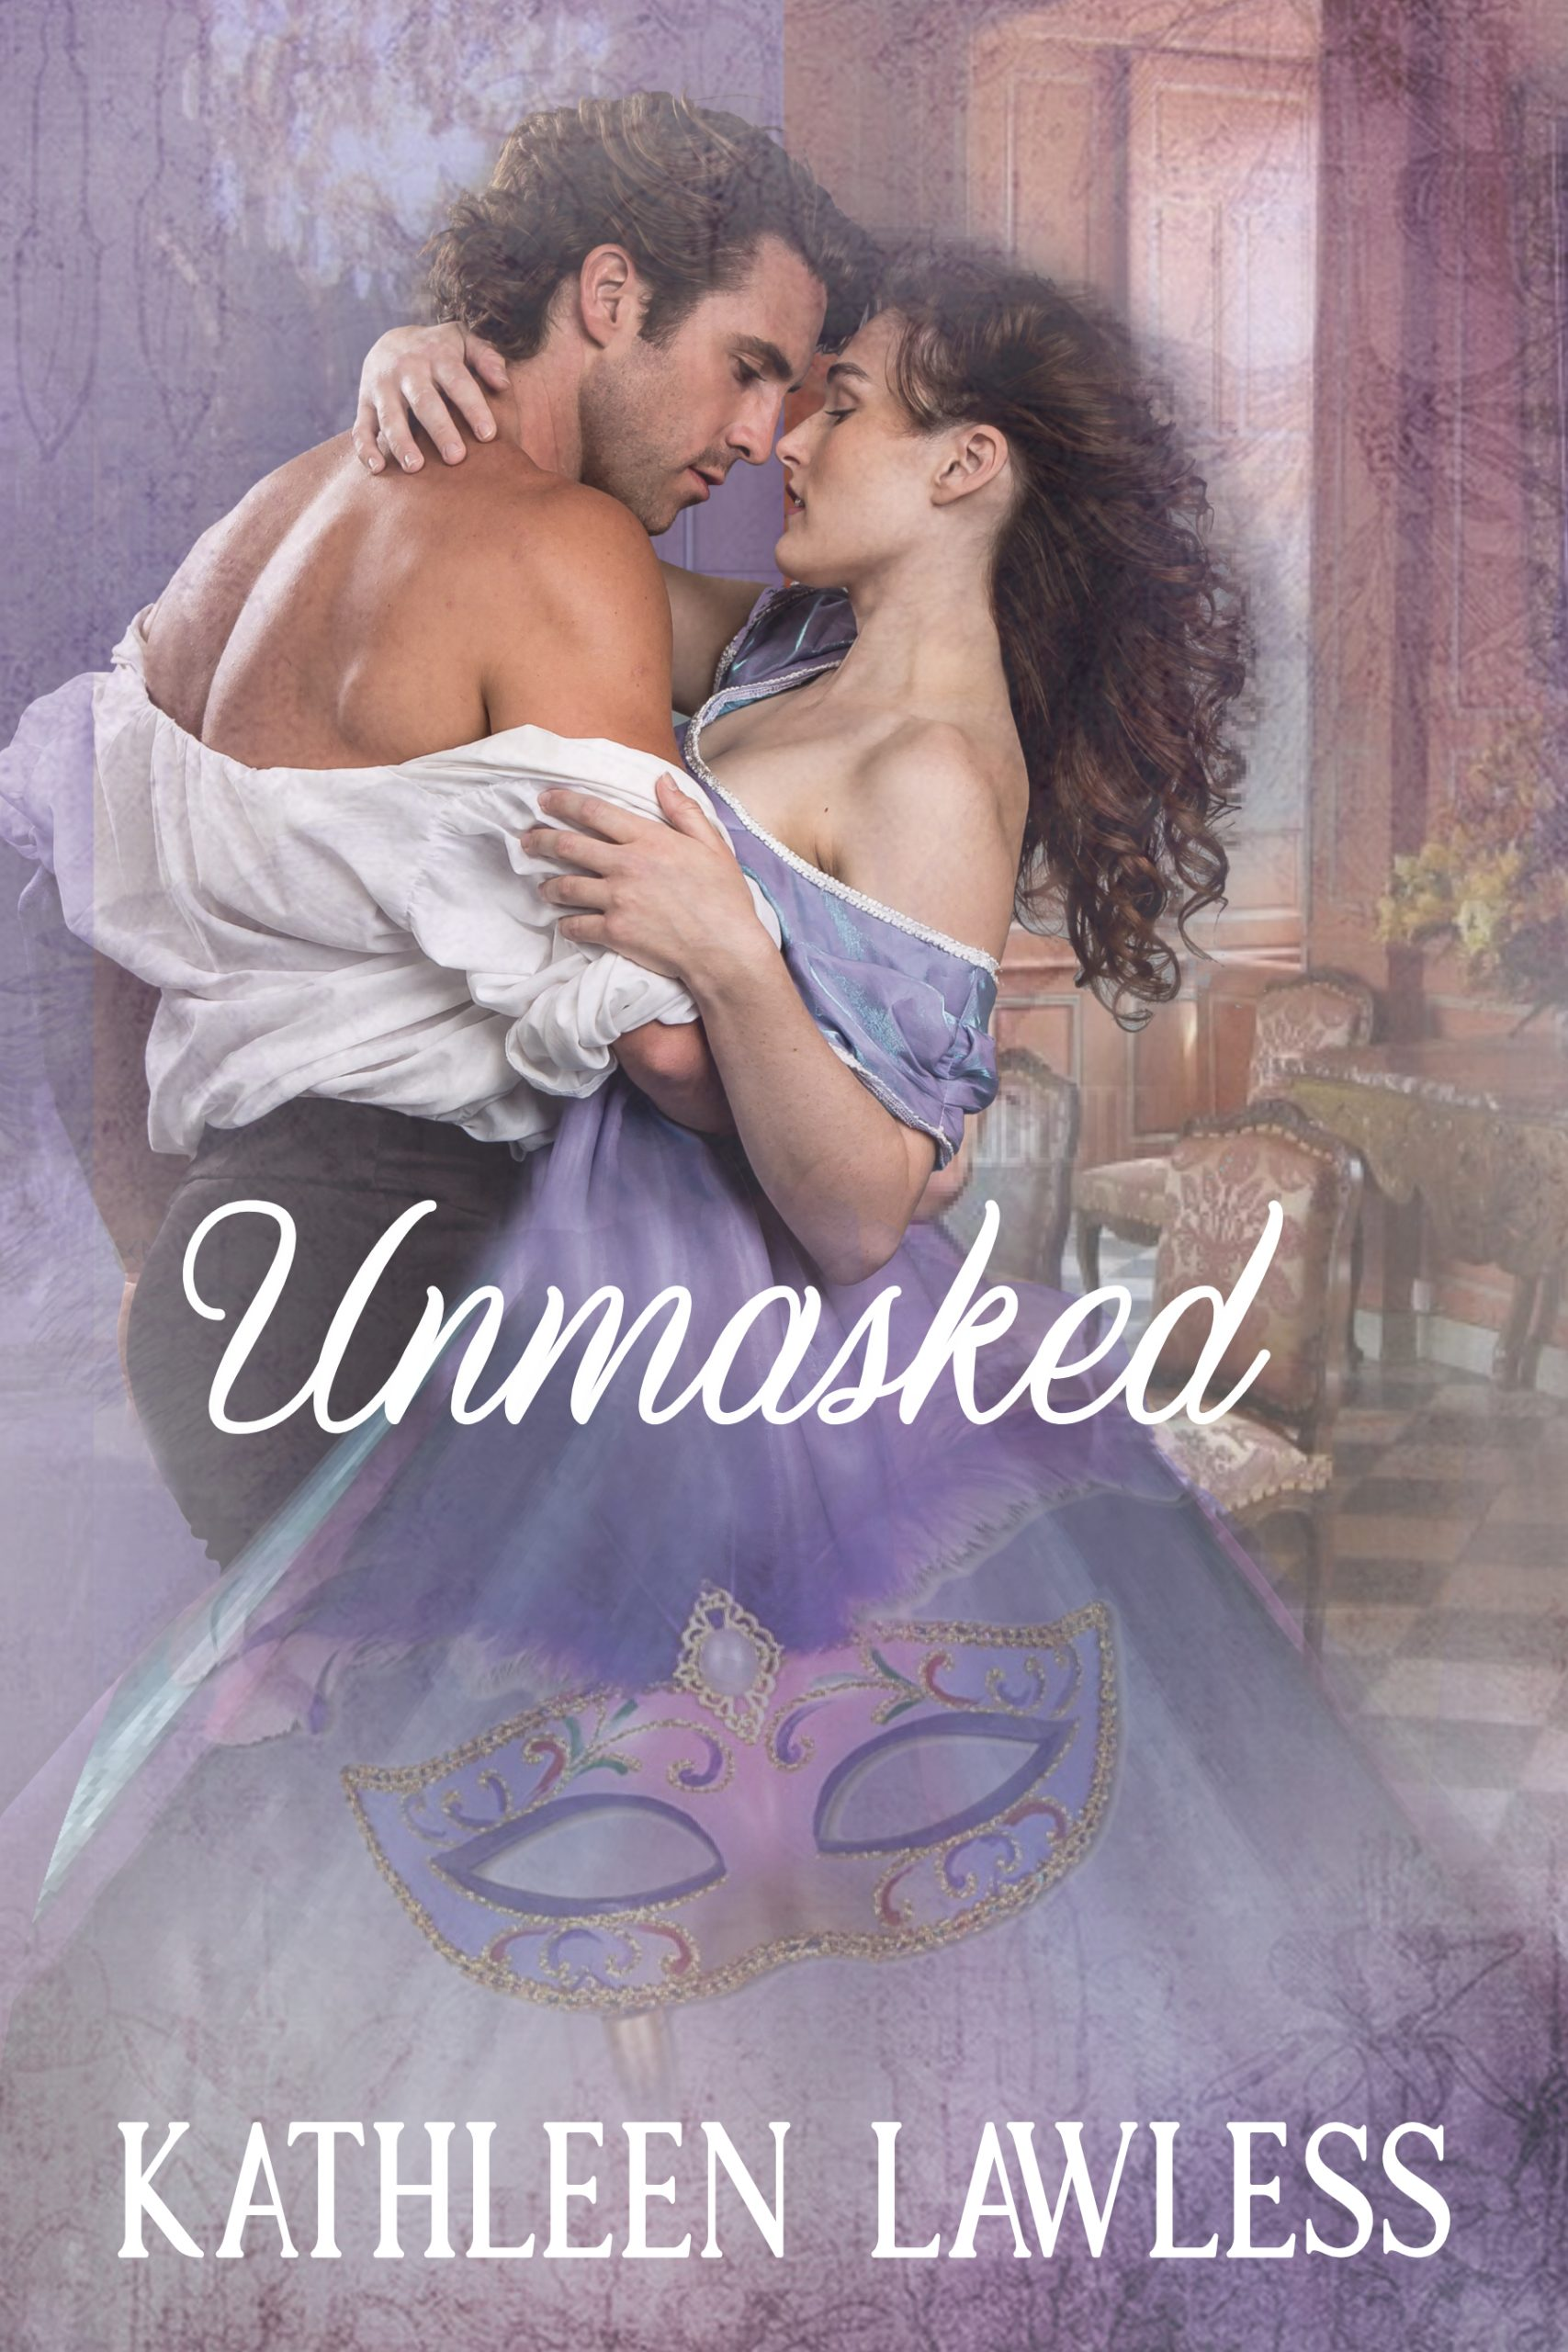 cover of Unmasked by Kathleen Lawless, 19th century couple in passionate pose